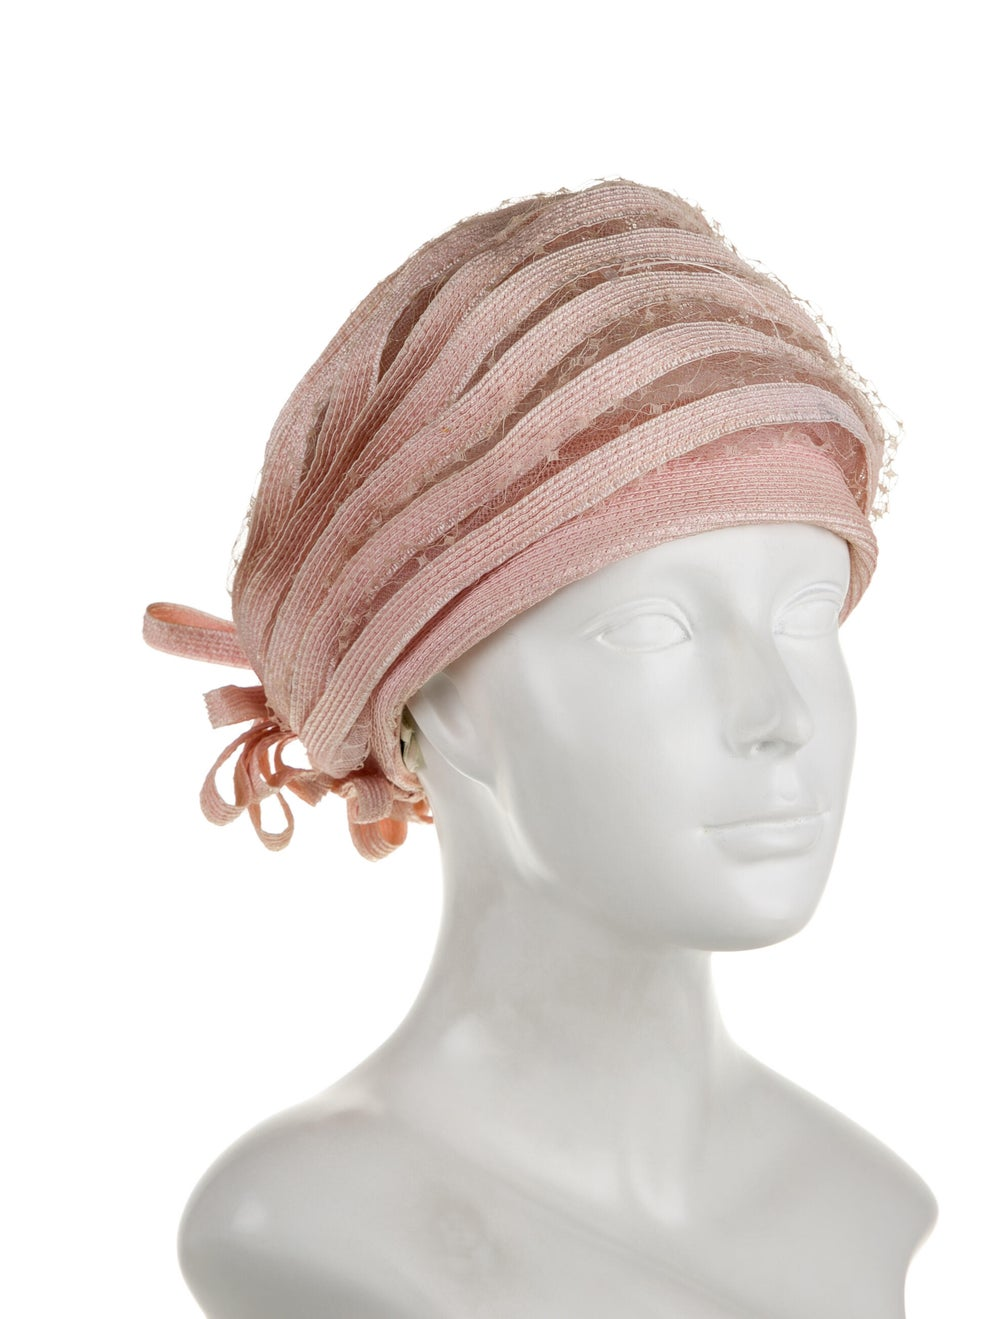 Christian Dior Lace Turban Hat Pink - image 3